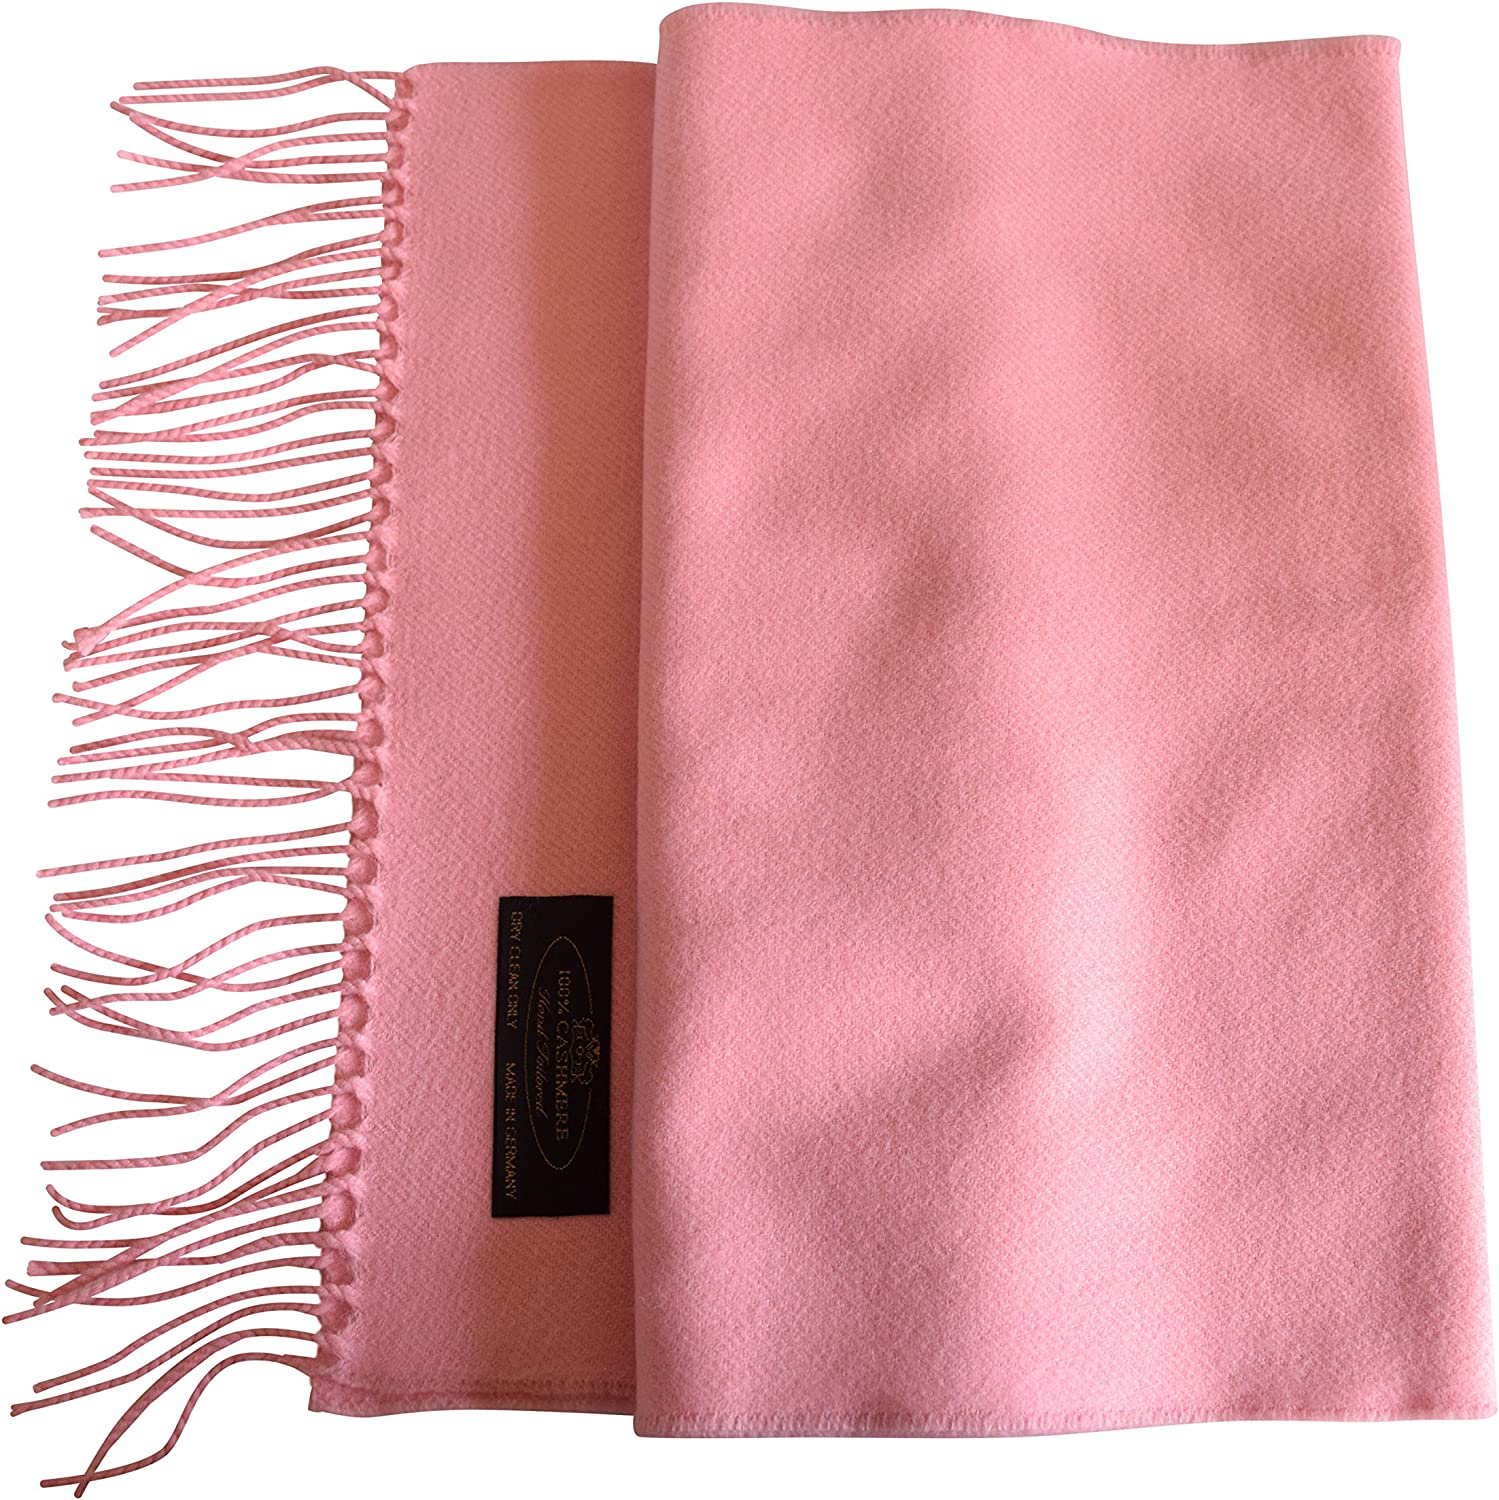 Anny's 100% Pure Cashmere Scarf 12 x72  with Gift Bag  Silky Soft Cashmere Scarf Gift (28 colors)